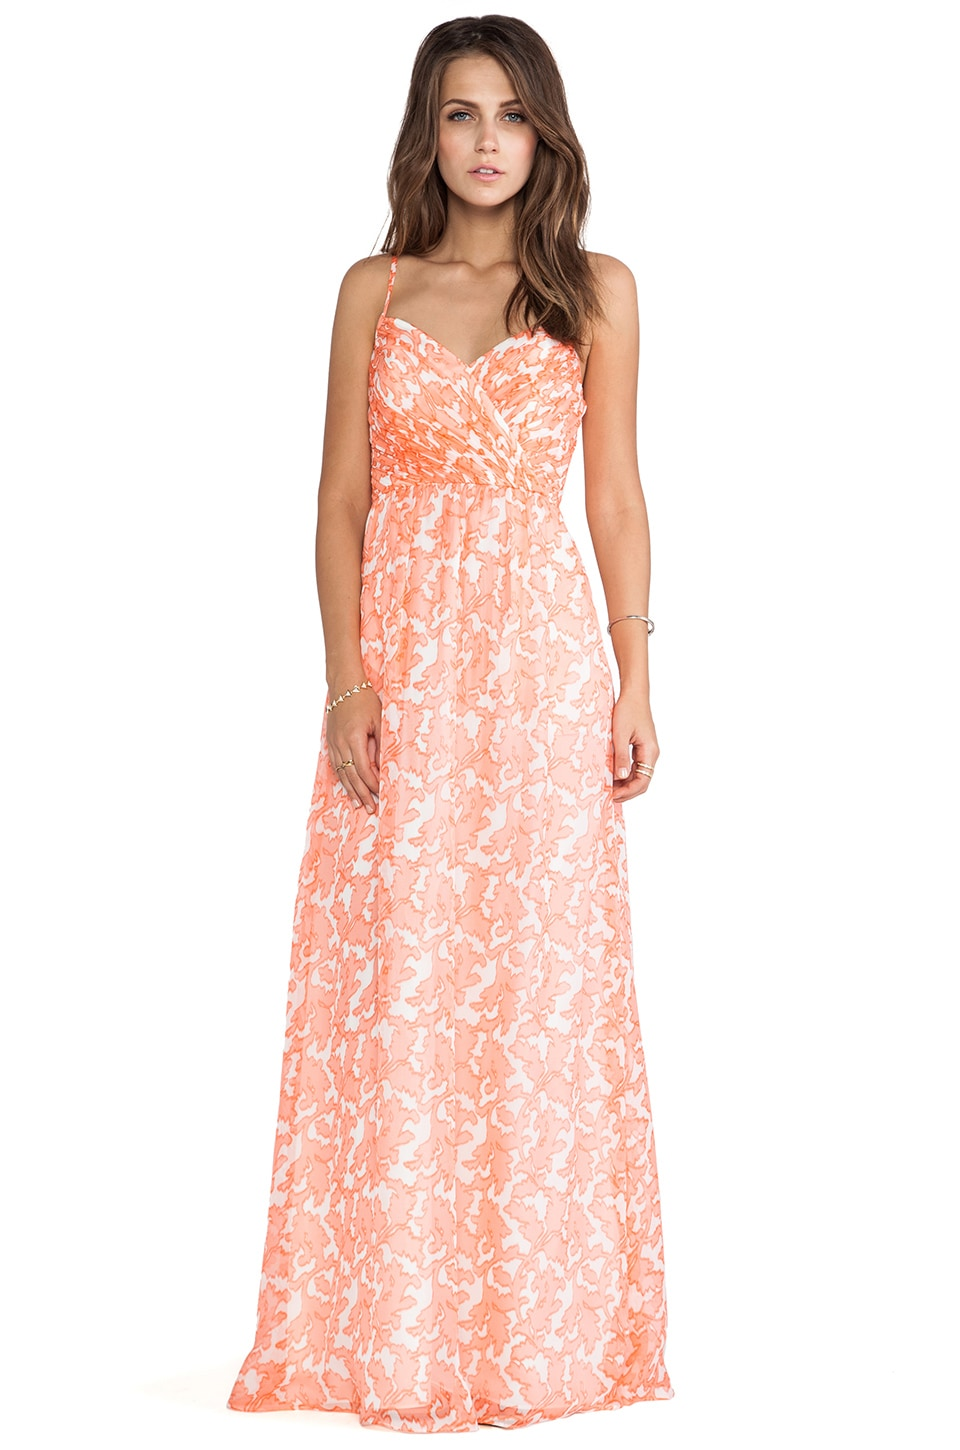 Shoshanna Dresses On Sale Shoshanna Coral Reef Chiffon